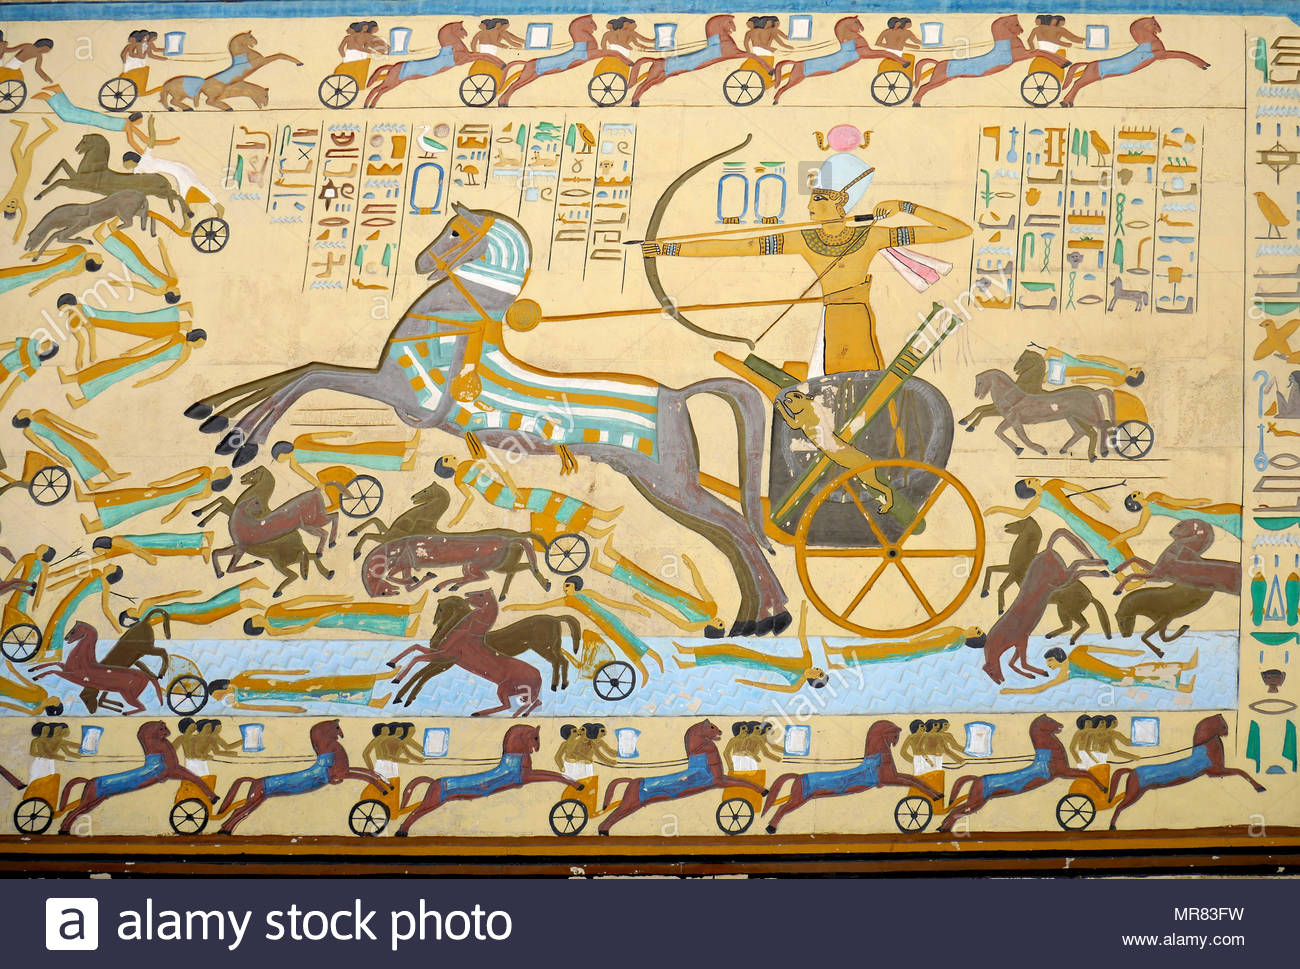 Reconstruction of a painted fresco depicting a battle scene in ancient Egypt. A Pharaoh defeats his enemies in a massive chariot led onslaught. The Battle of Kadesh or Battle of Qadesh took place between the forces of the Egyptian Empire under Ramesses II and the Hittite Empire under Muwatalli II at the city of Kadesh on the Orontes River, just upstream of Lake Homs near the modern Syrian-Lebanese border. The battle is generally dated to 1274 BC in the conventional Egyptian chronology, and is the earliest battle in recorded history for which details of tactics and formations are known. It is b - Stock Image